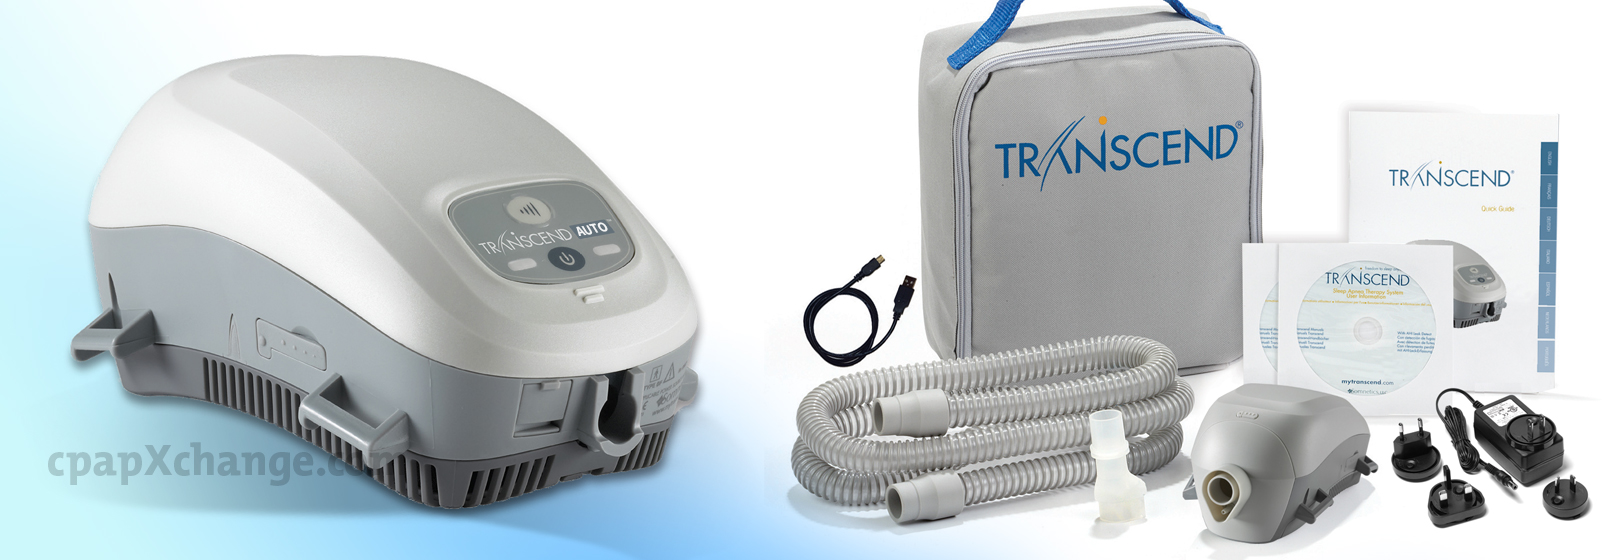 transcend ii travel cpap machine humidifier